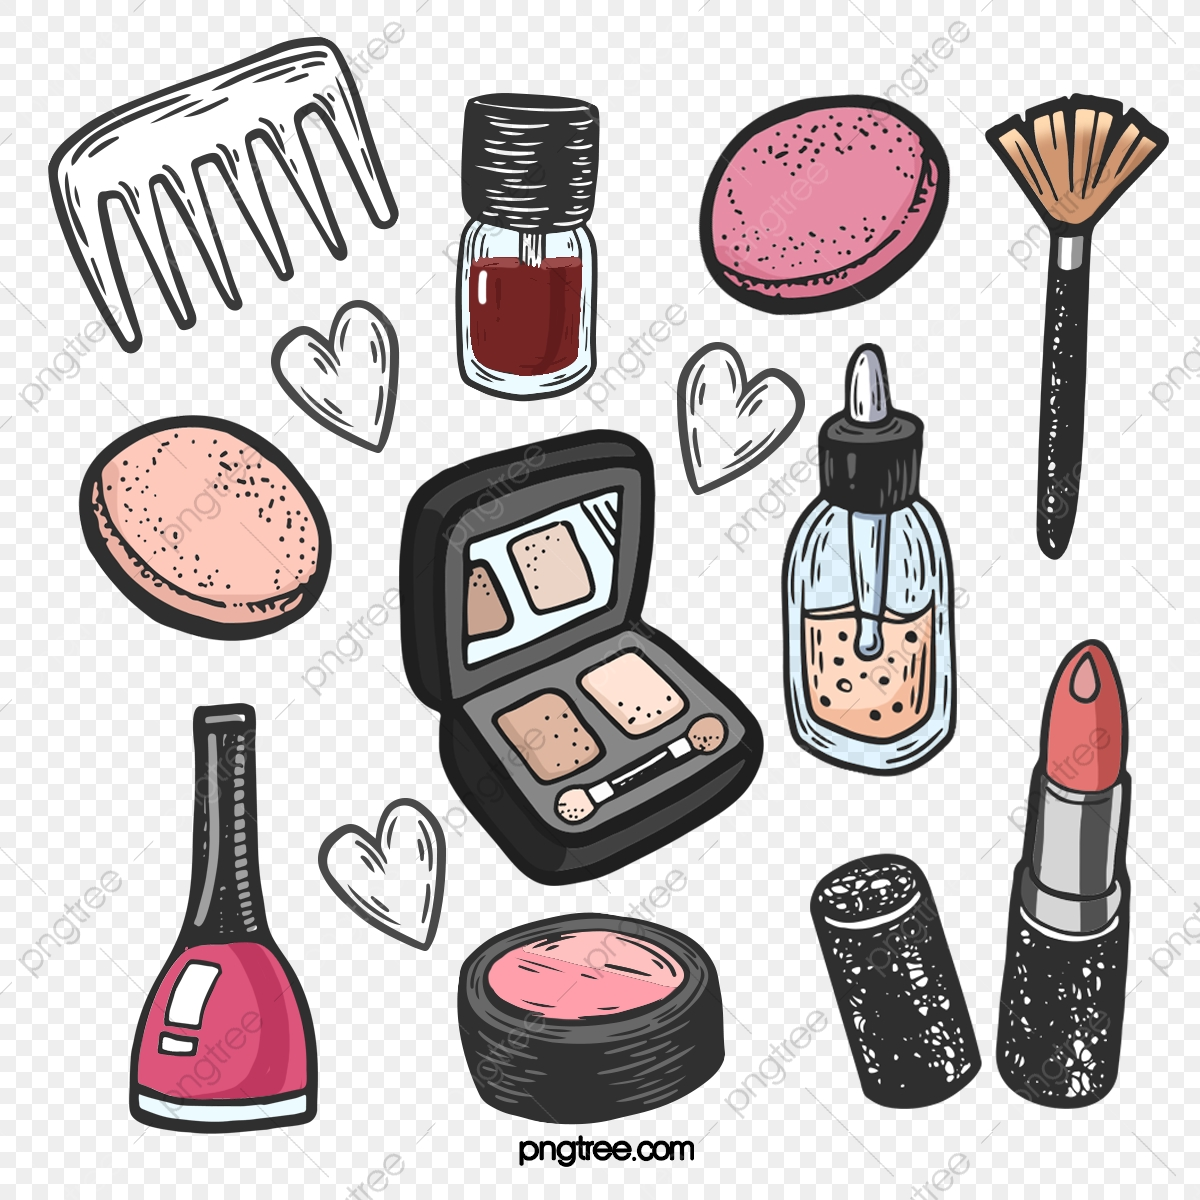 nail clipart png images vector and psd files free download on pngtree https pngtree com freepng cosmetics 4814814 html